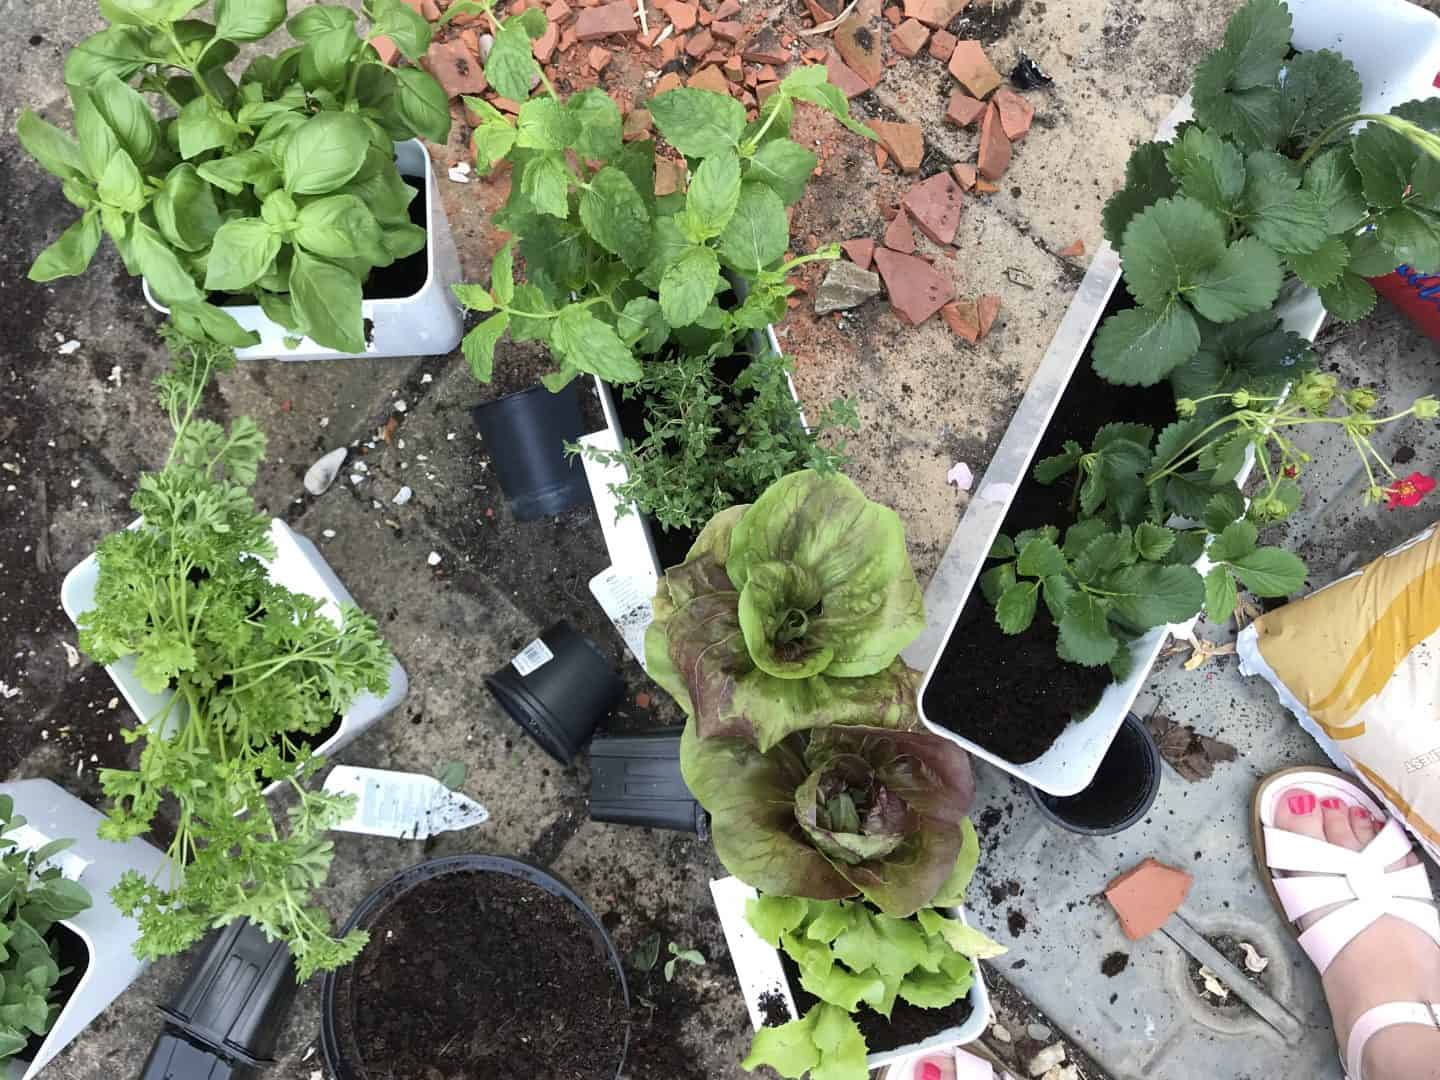 Herbs, lettuce and strawberries planted up ready to move indoors